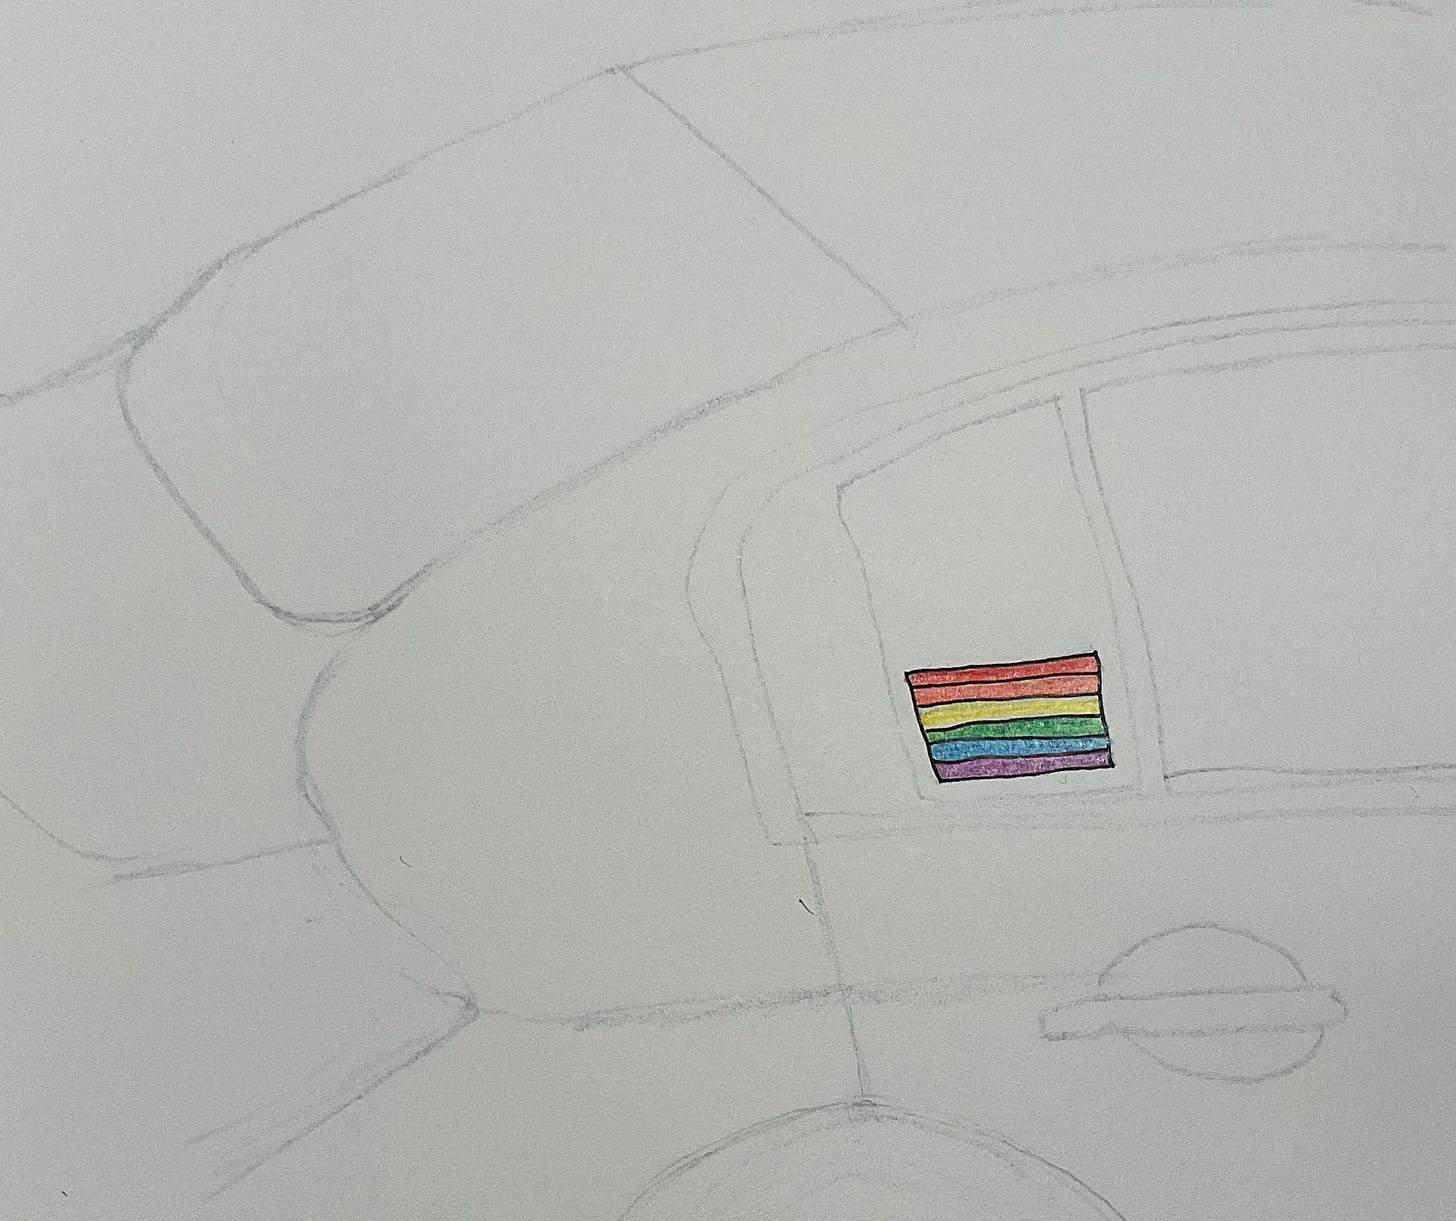 Line drawing of the side of a car with a small rainbow flag sticker in the back window